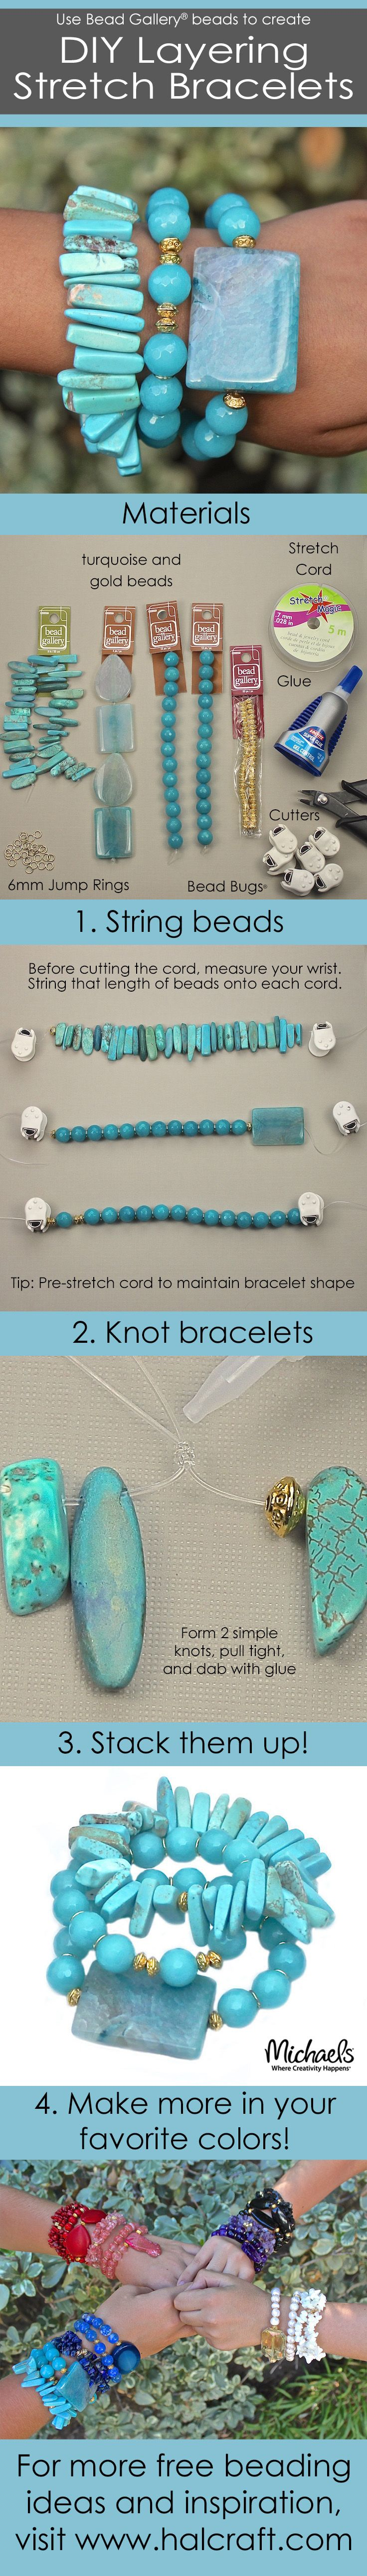 It's so easy to make these DIY Layering Stretch Bracelets, that you'll want to make an armful!